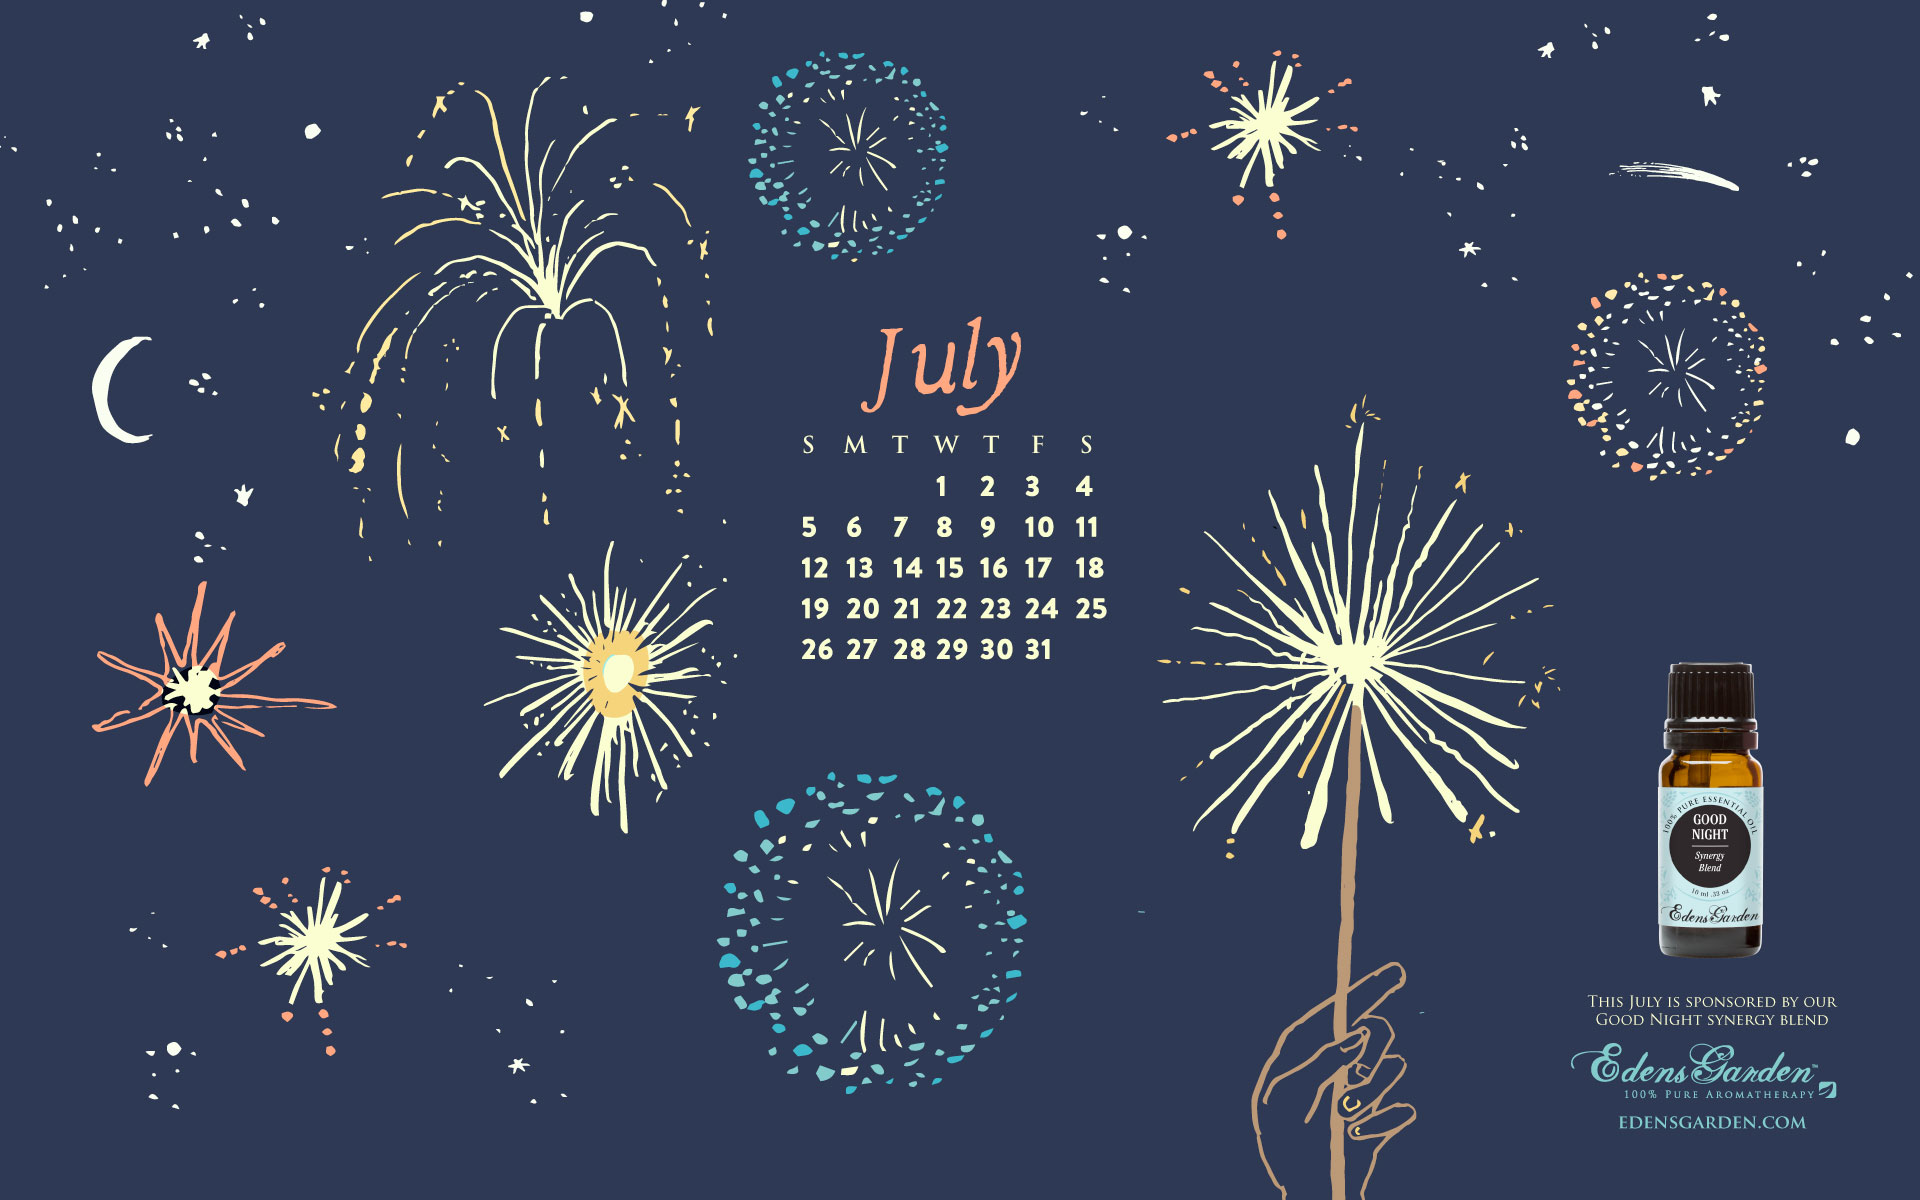 EG July Calendar Wallpaperjpg15886295005987483324 1920x1200